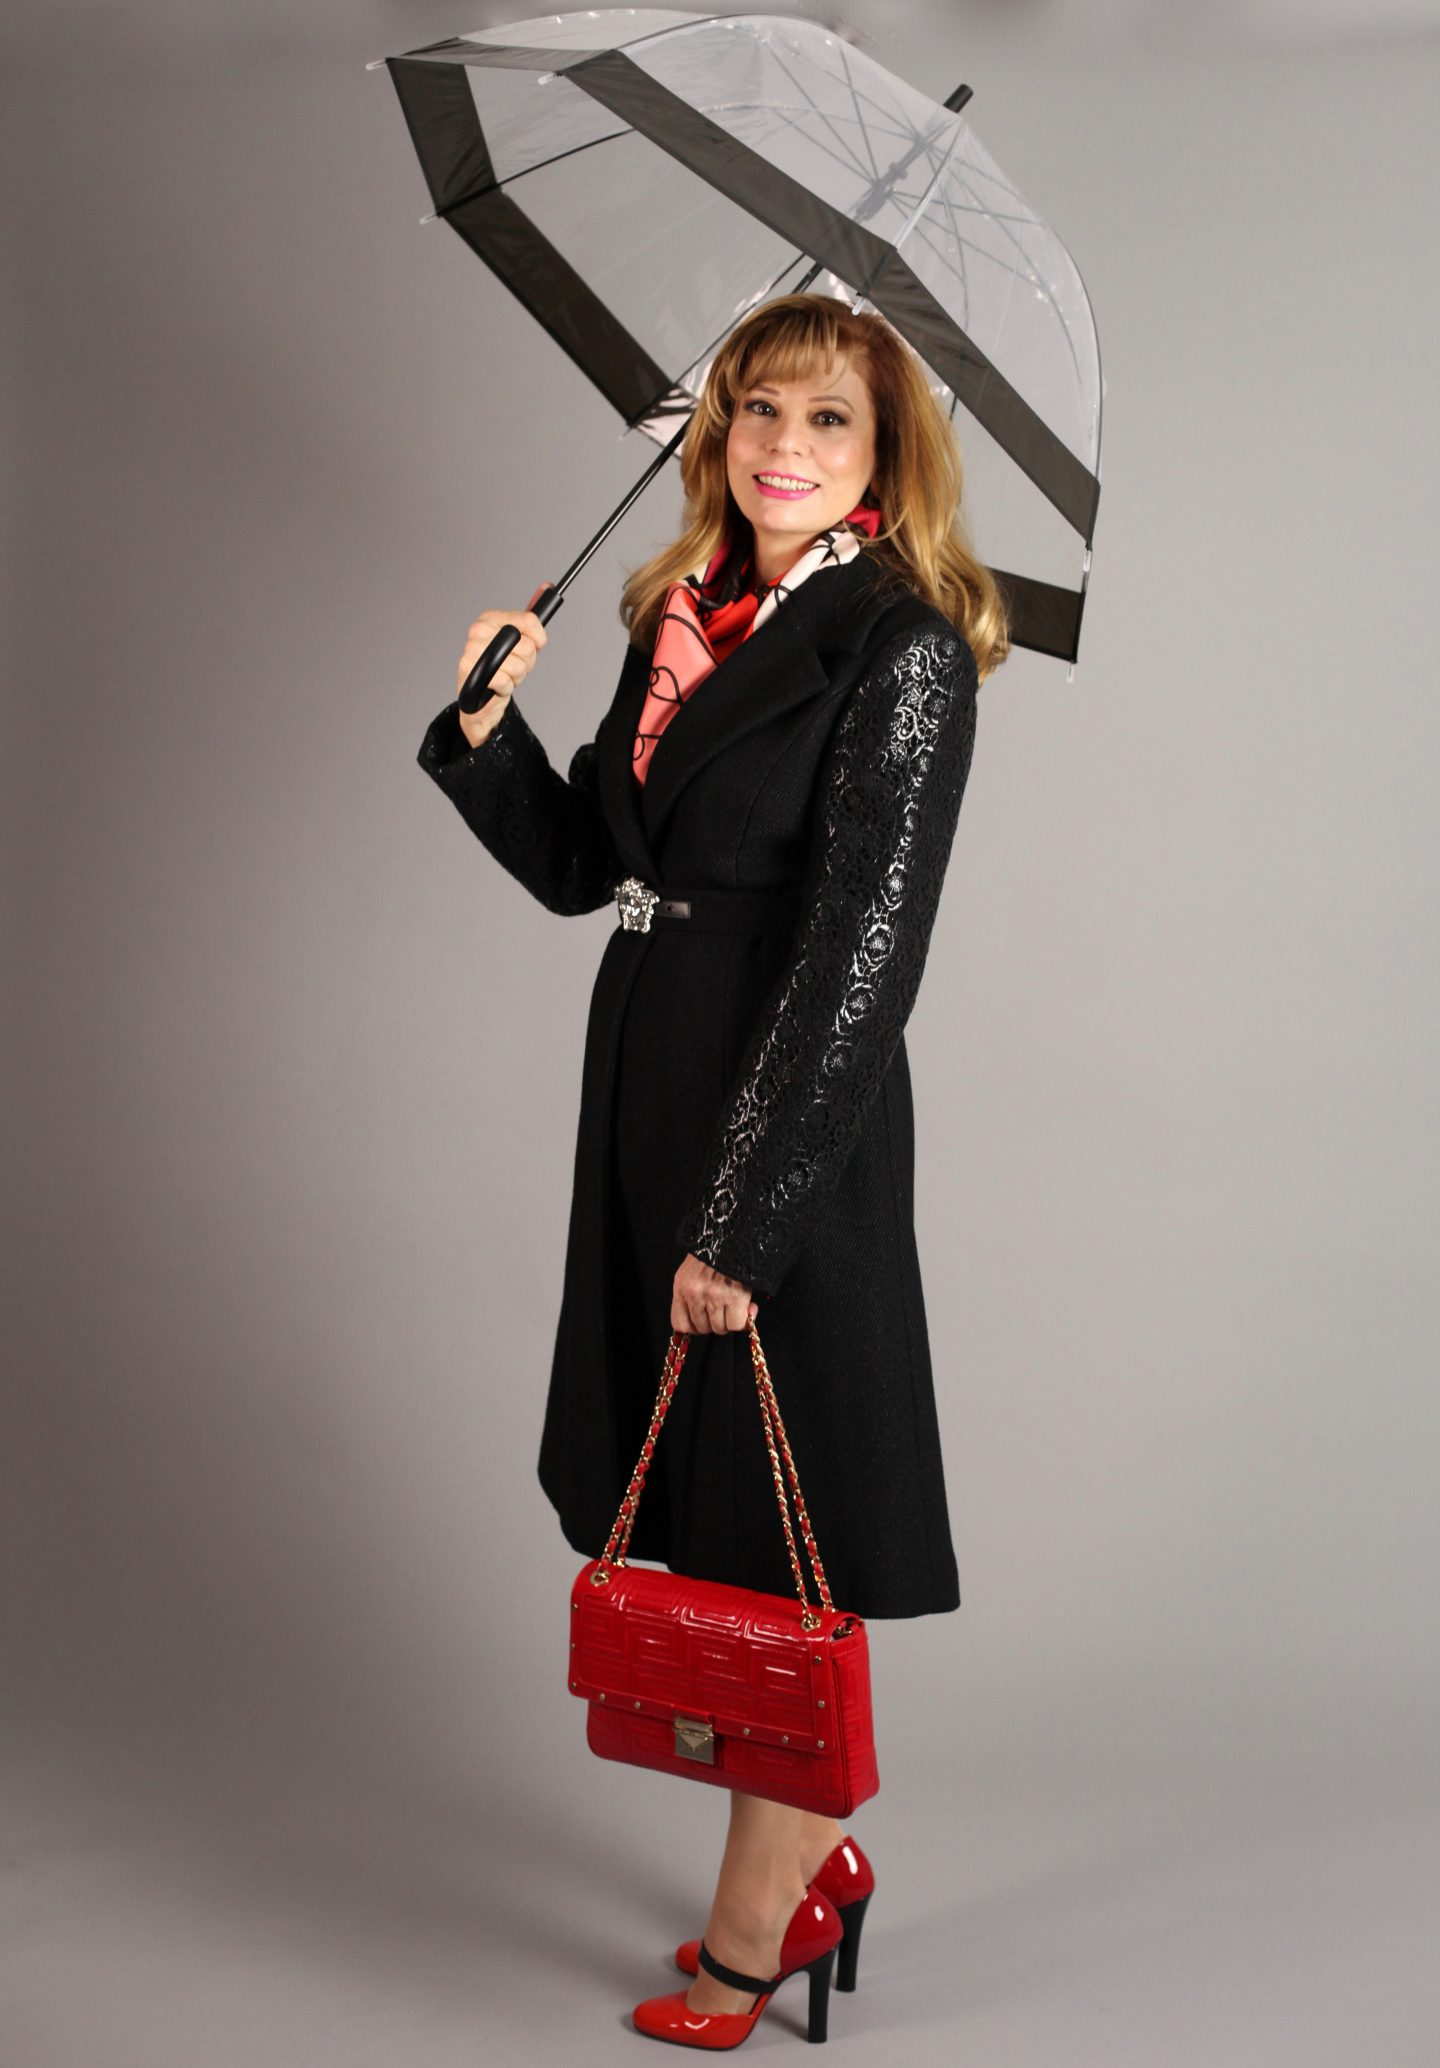 MY 2nd MOST GLAMOROUS  COAT AND THE TRANSPARENT UMBRELLA